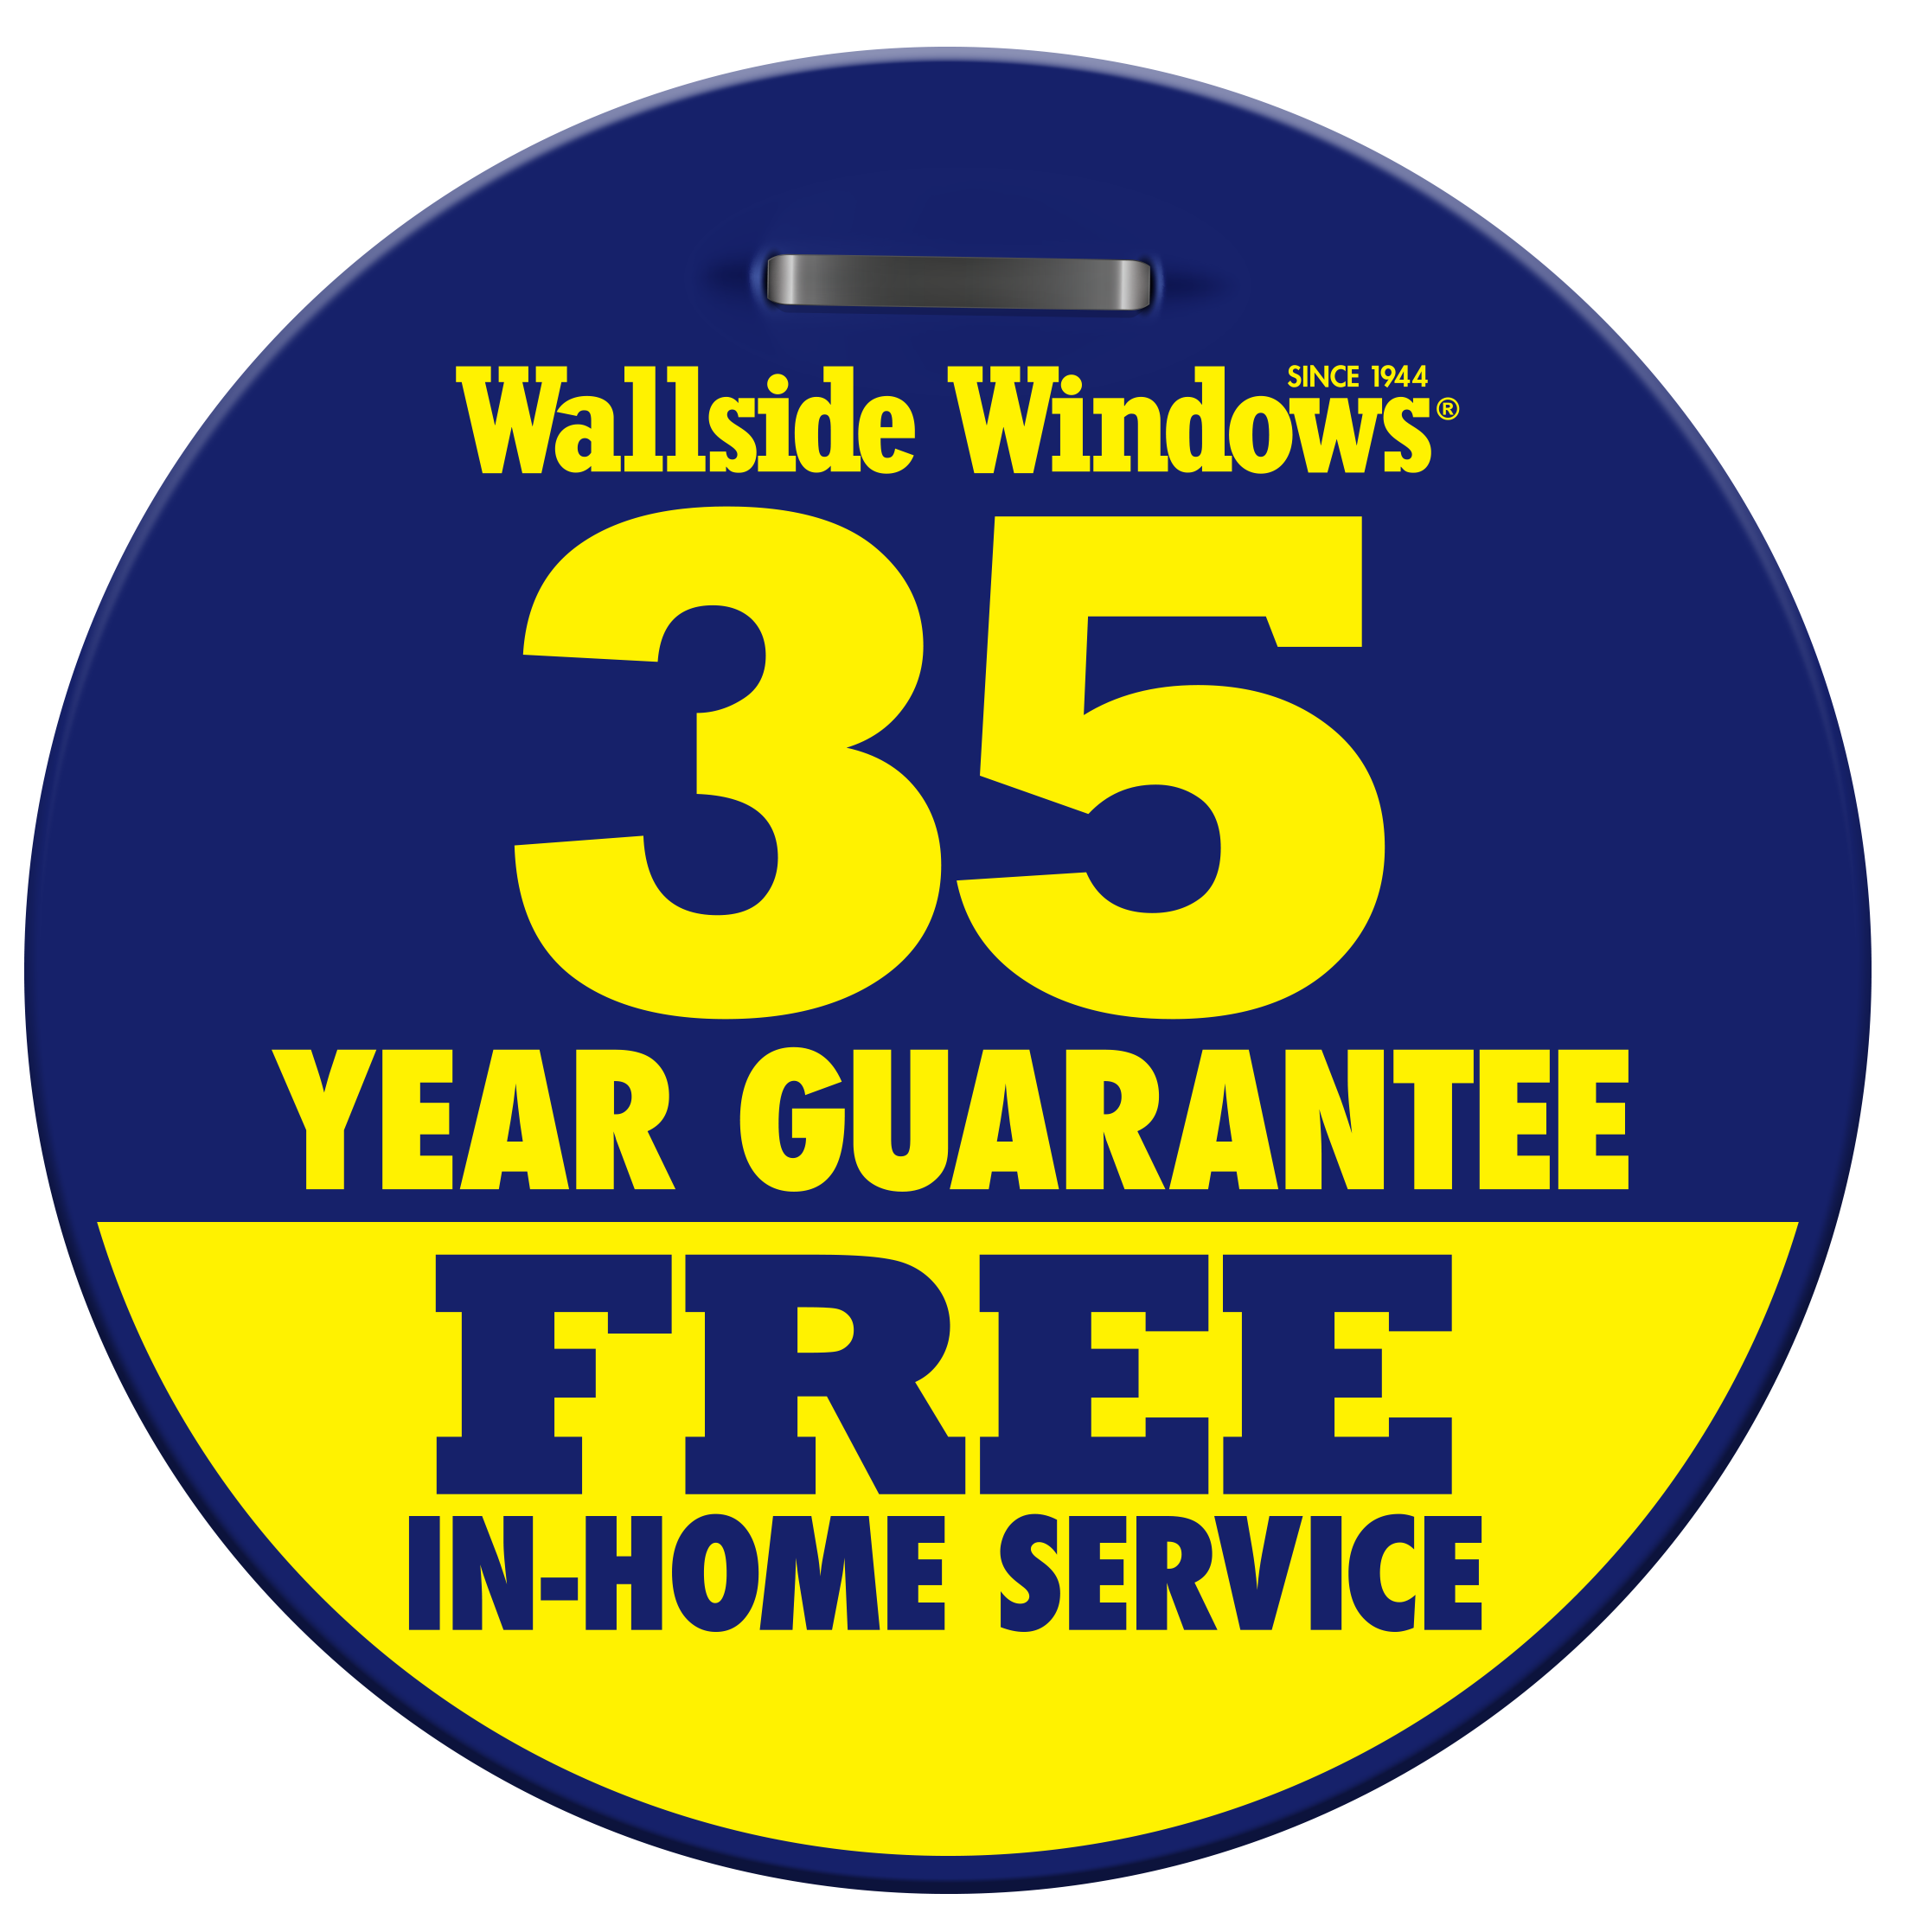 Wallside Windows 35 year guarantee